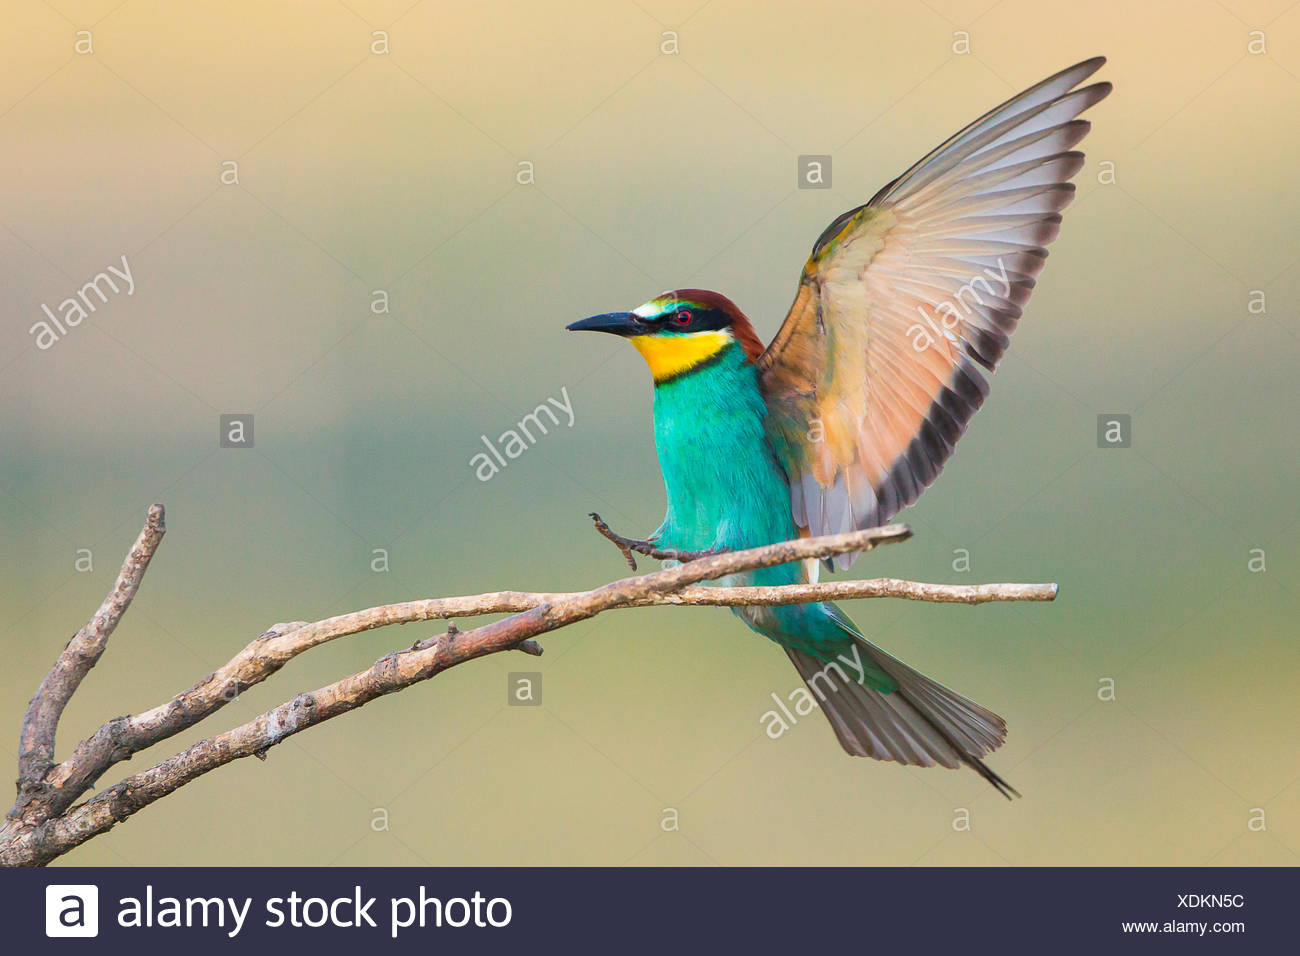 Bee-eater (Merops apiaster) approaching twig, Burgenland, Austria - Stock Image